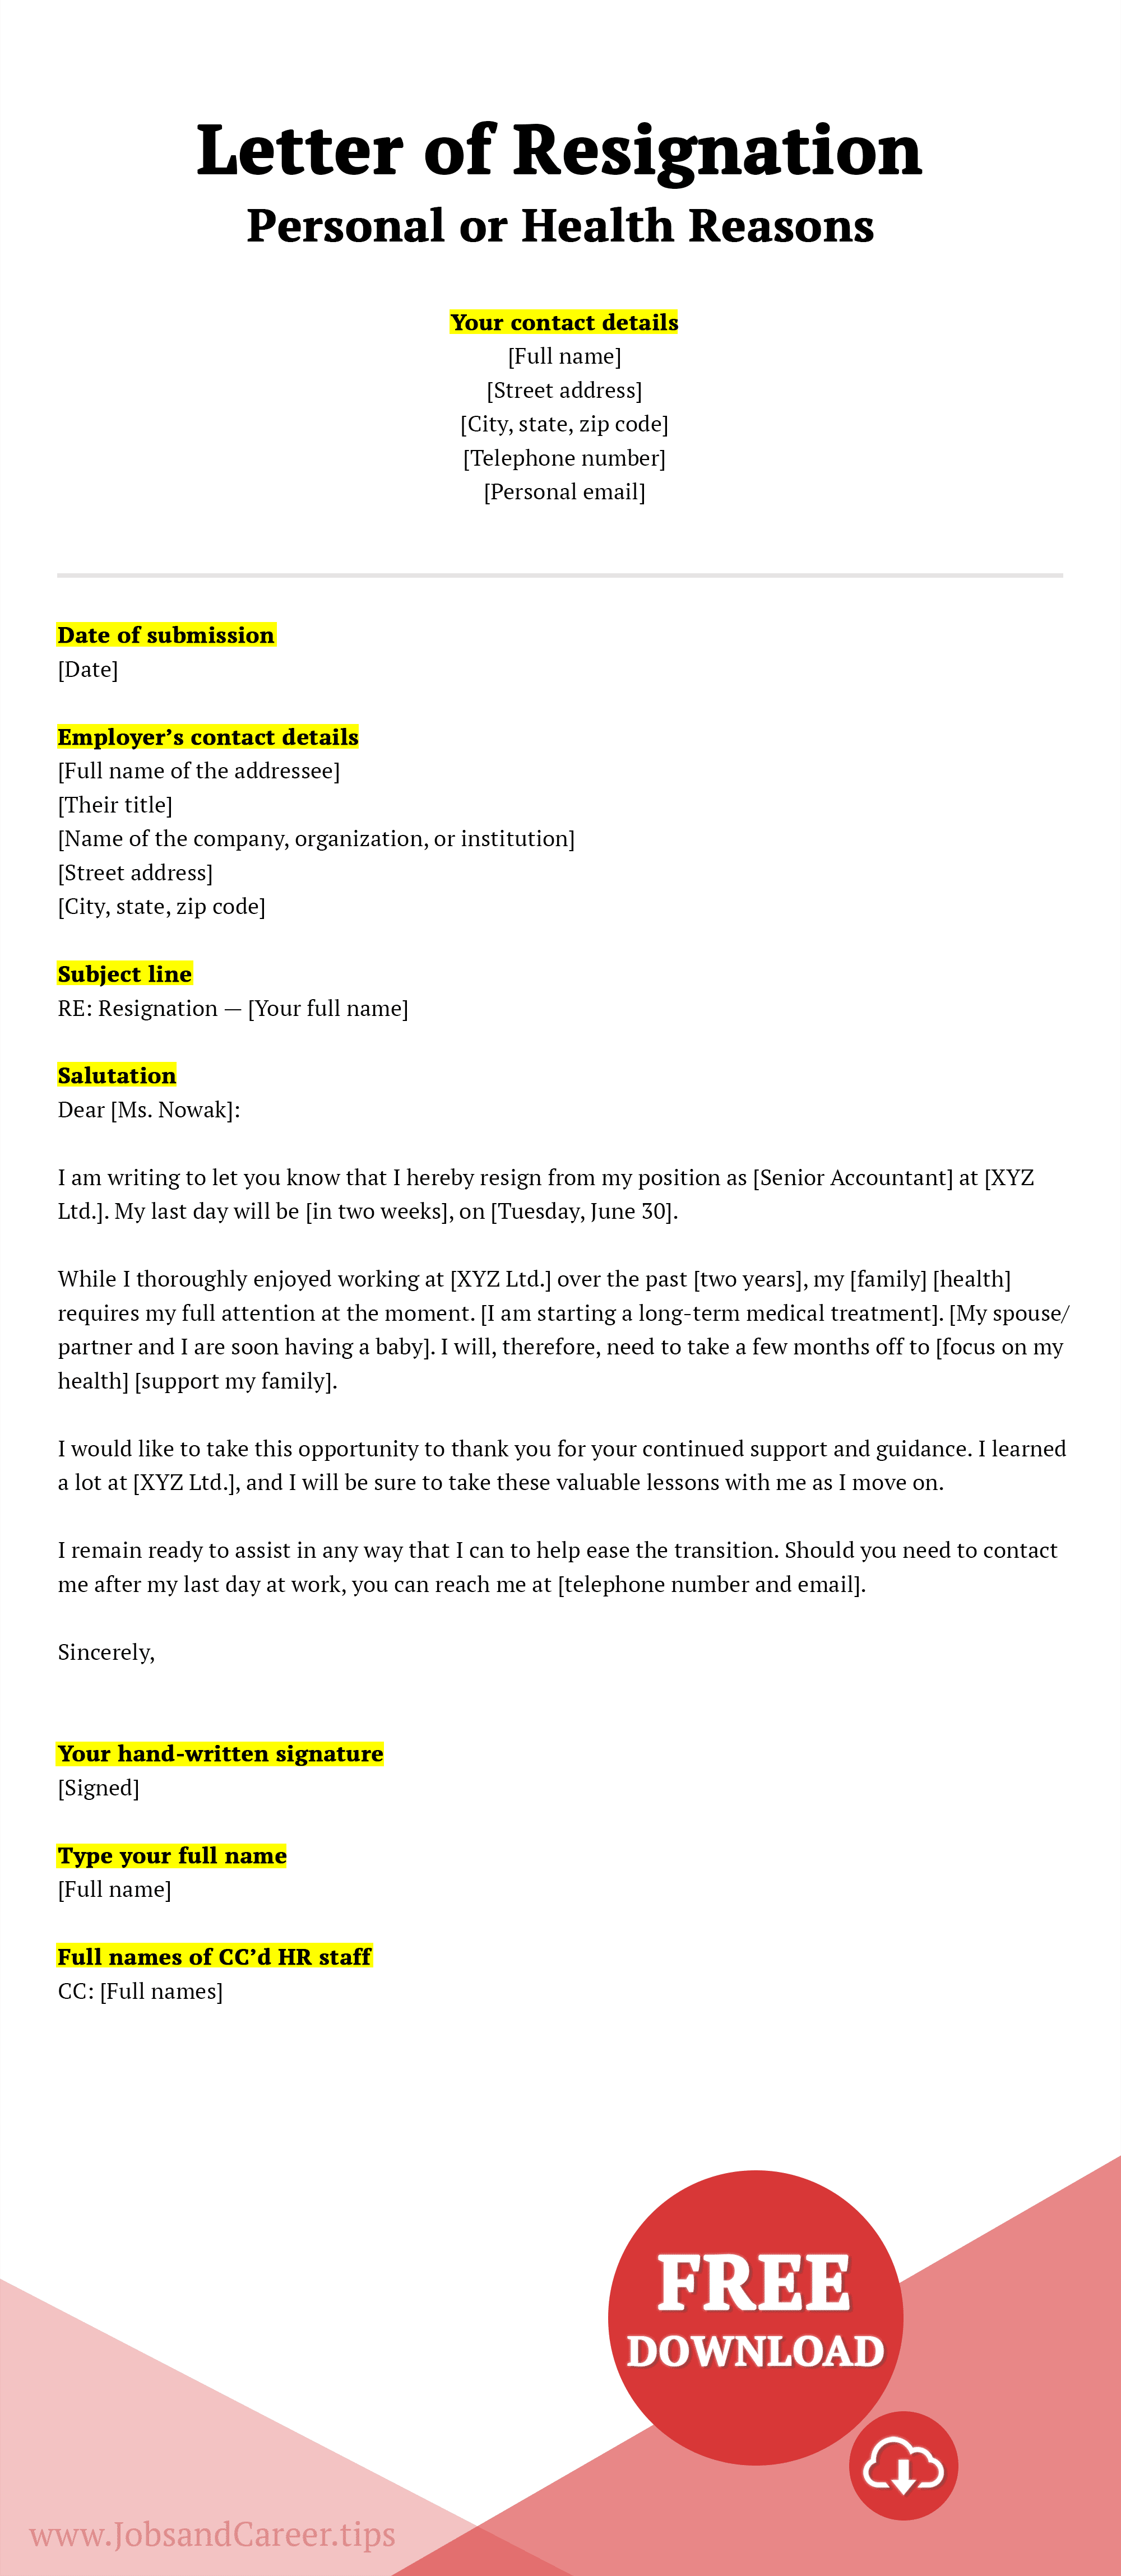 Click to download resignation letter due to personal or health reasons template